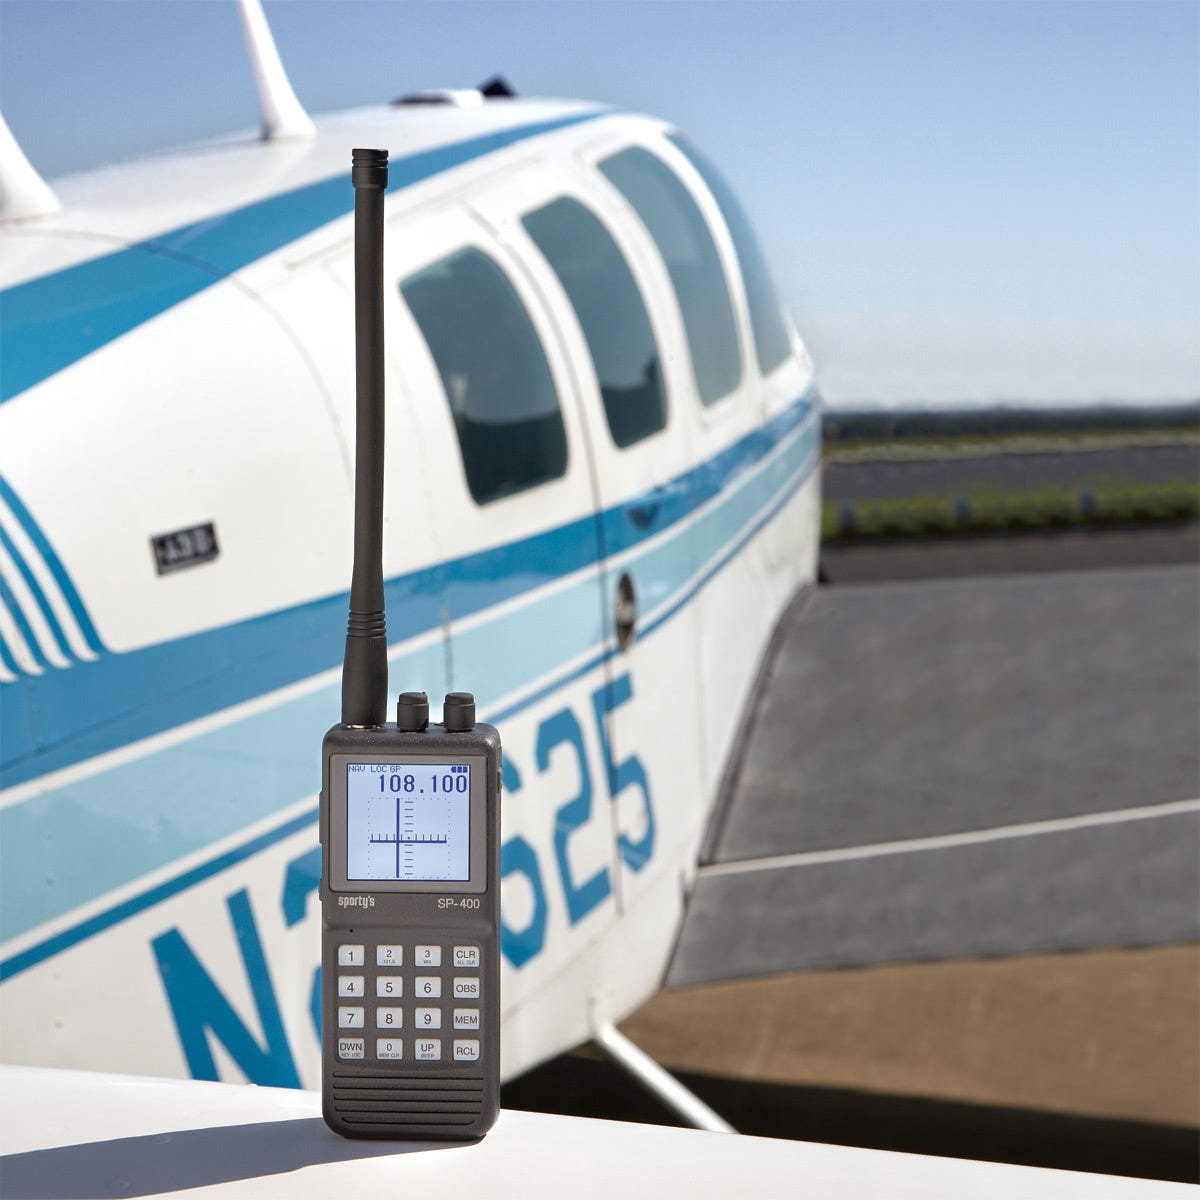 Sportys sp 400 handheld navcom aviation radio from sportys more photos fandeluxe Image collections